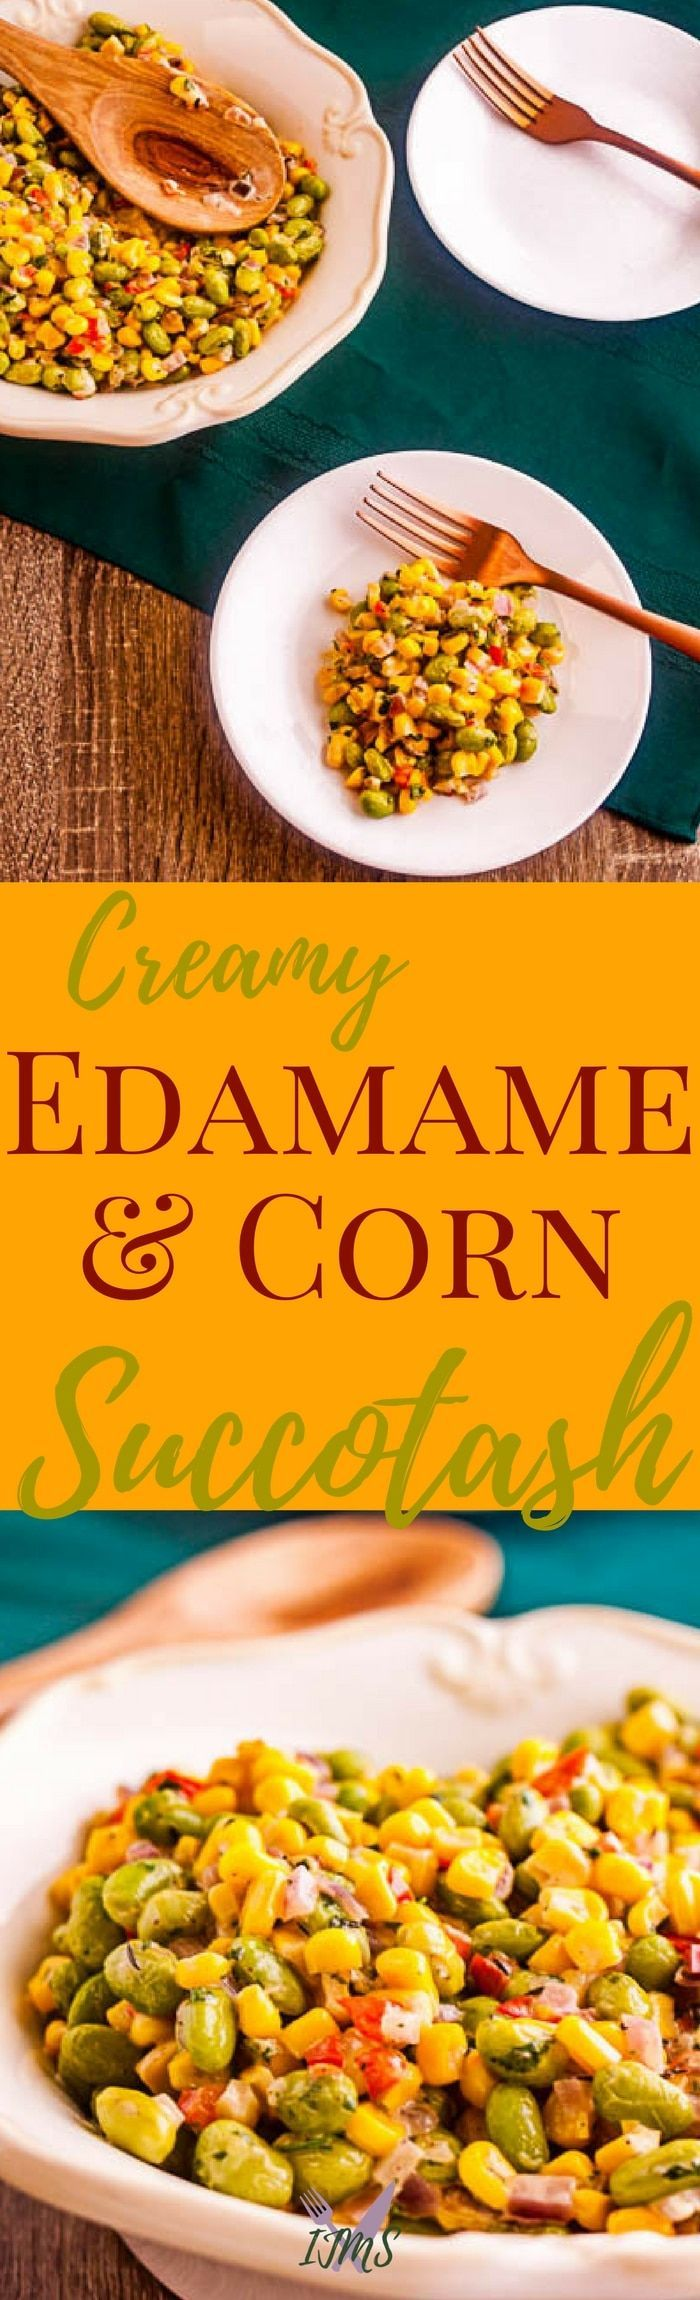 A vibrant and updated creamy edamame and corn succotash is easy to make. Consider serving this dish with the rest of your holiday spread. via @ijustmakesandwi